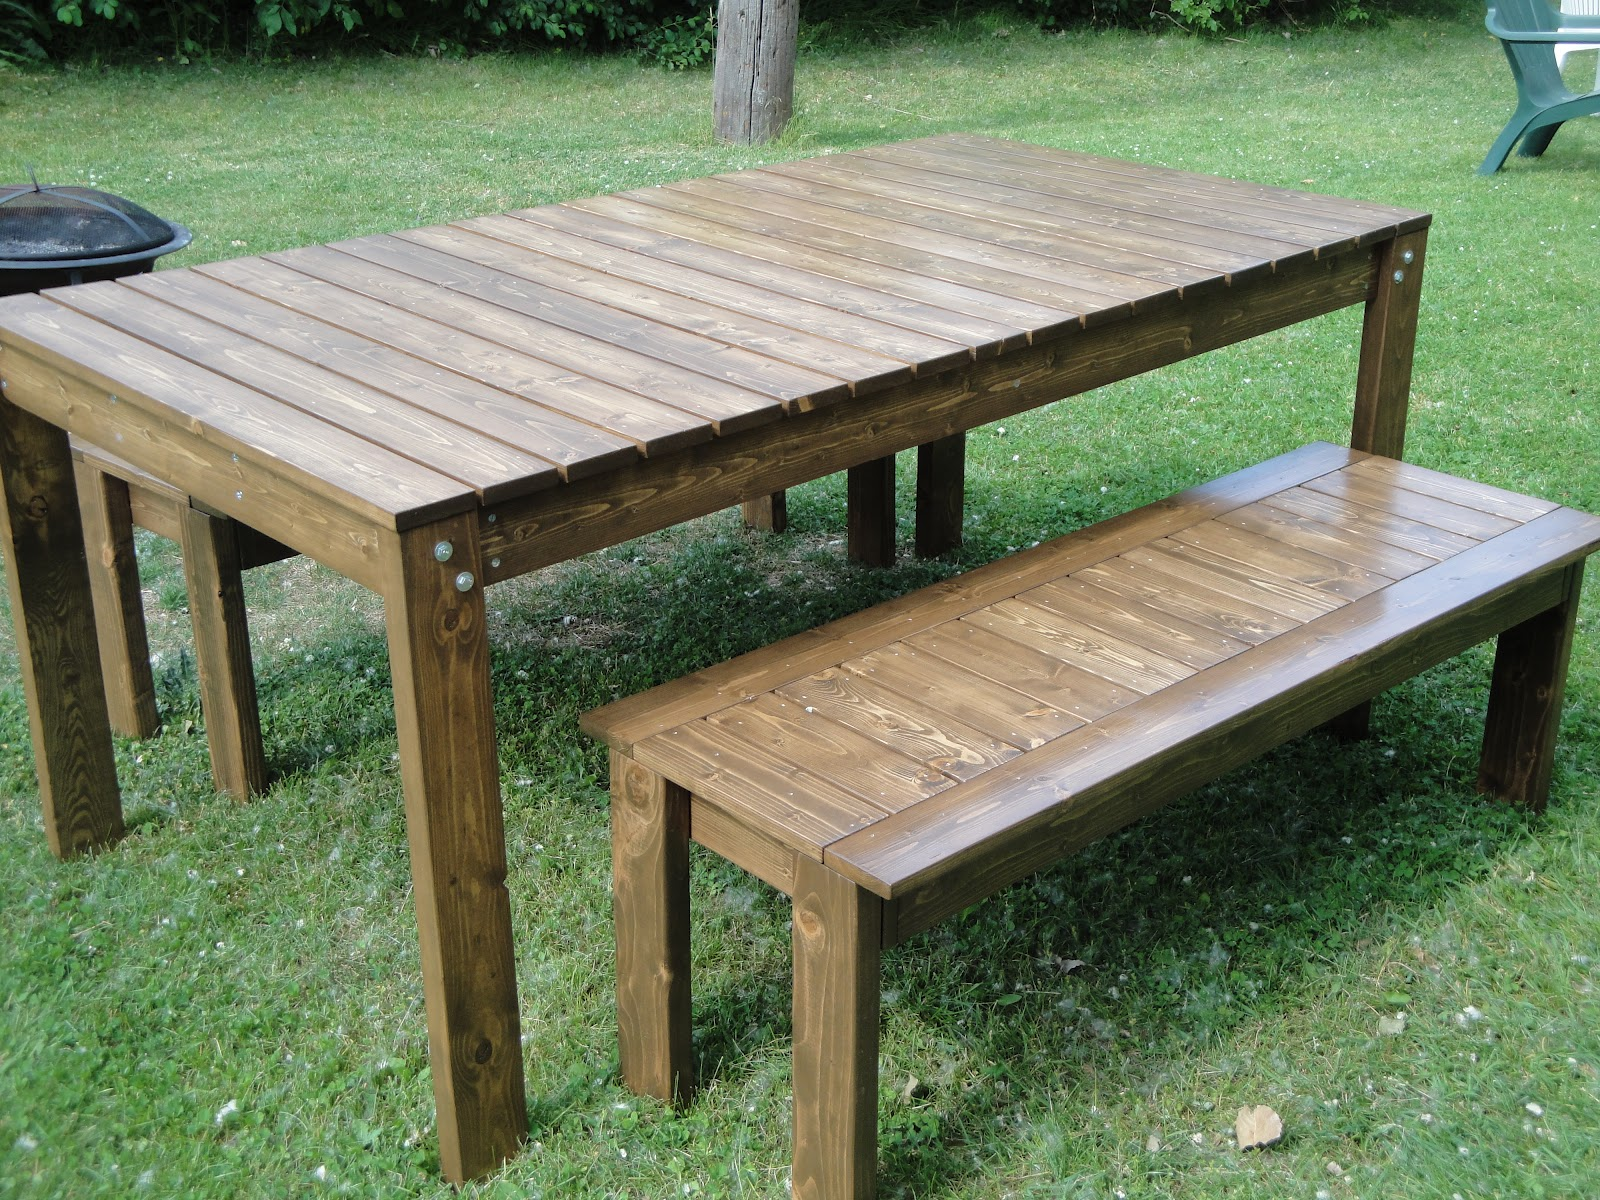 How to build a garden table and bench woodguides Yard bench